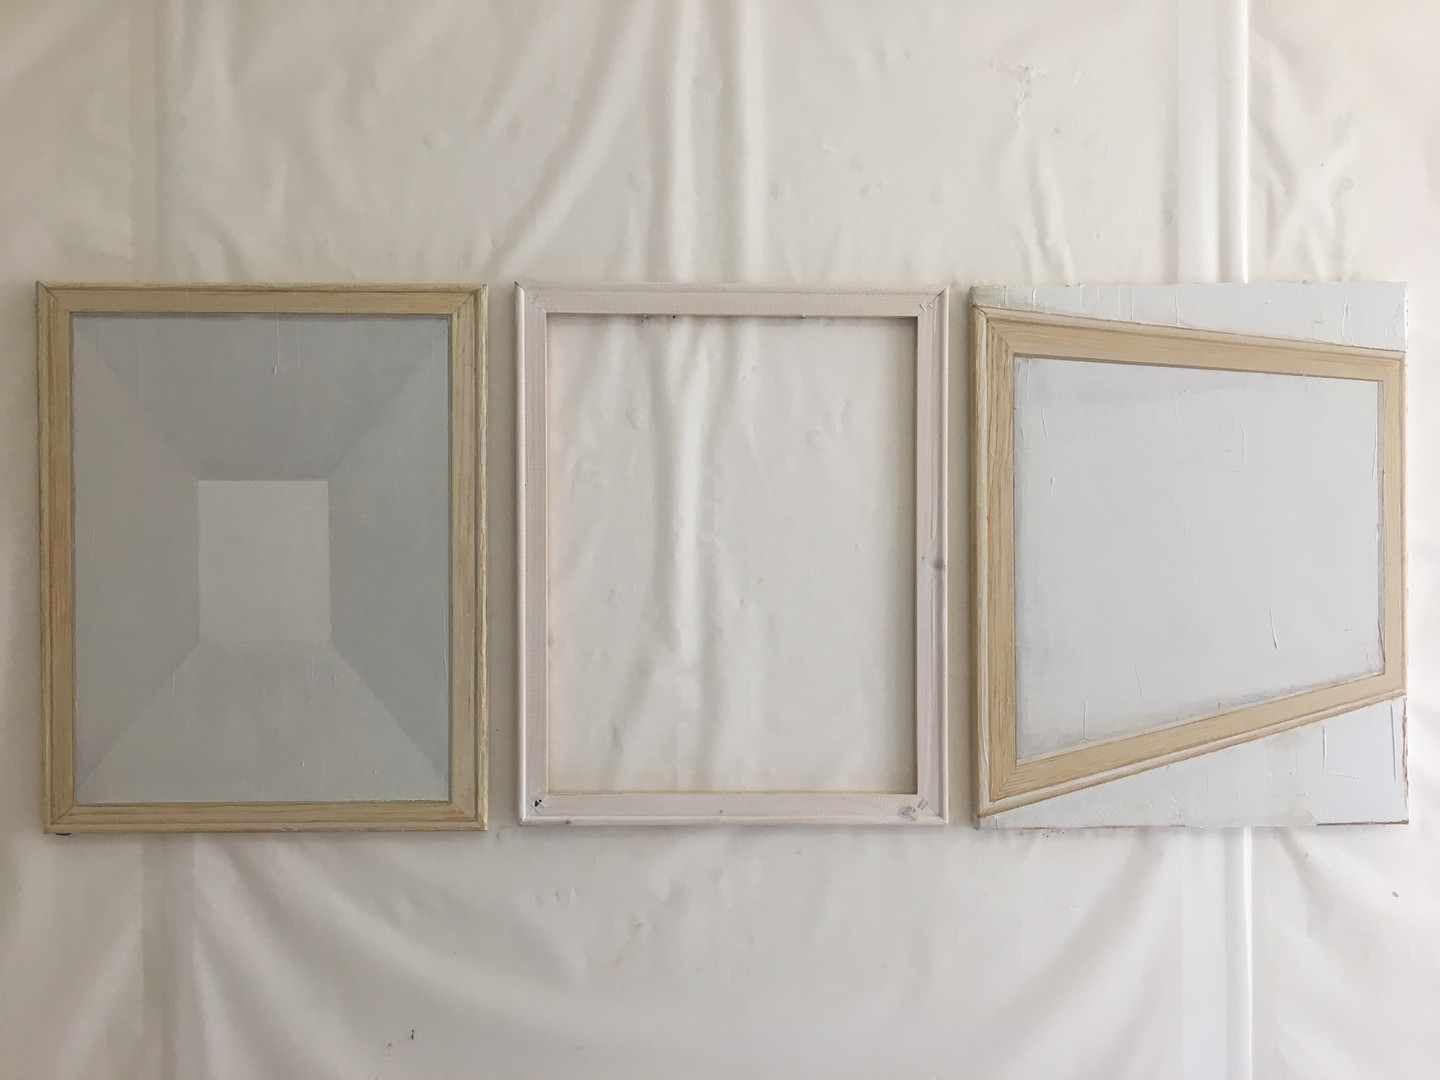 Painting Frame Space 1 and 2